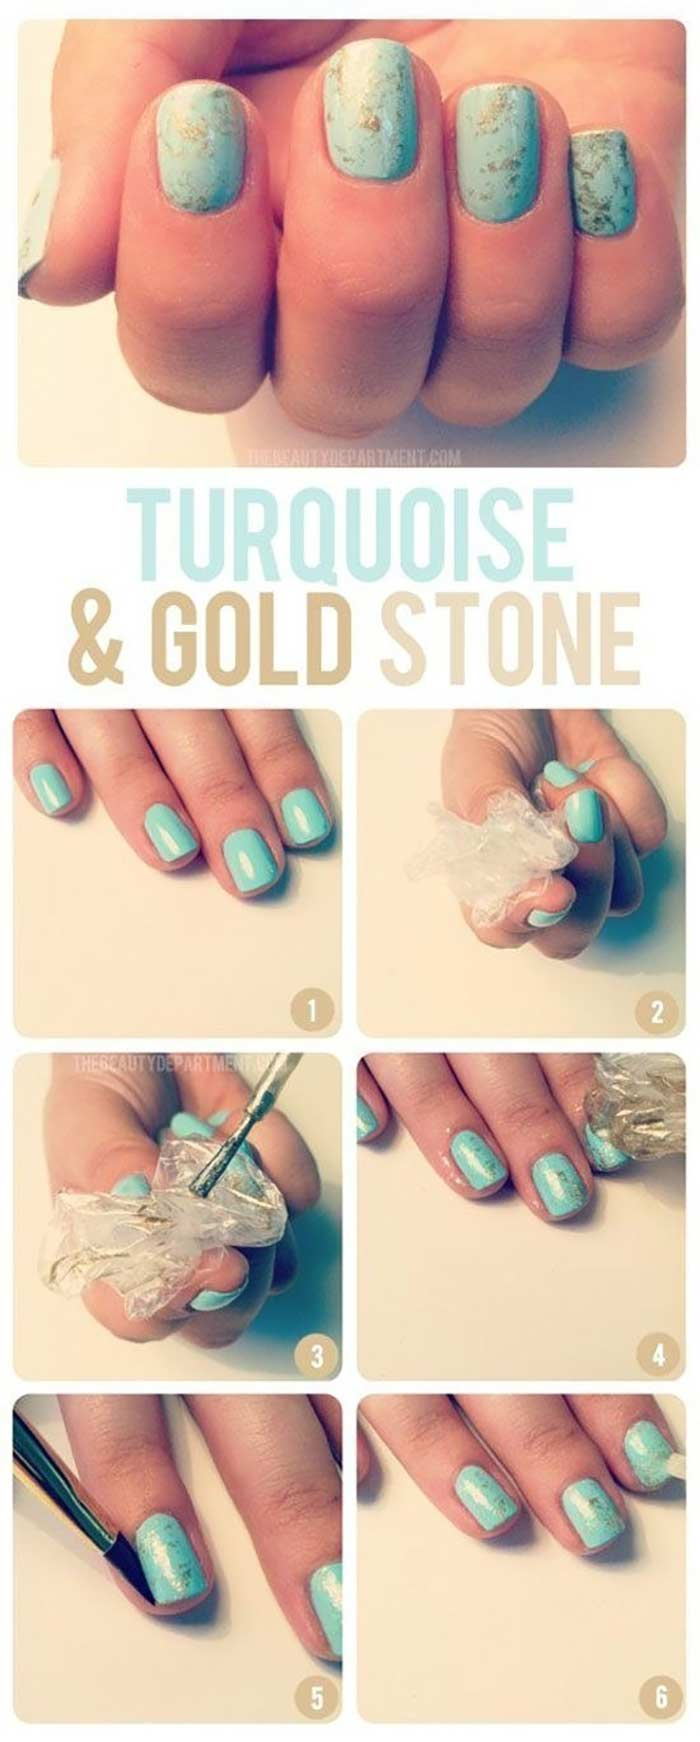 Top 60 easy nail art design tutorials for short nails 2017 turquoise and gold nails cute nail designs for short nails prinsesfo Choice Image